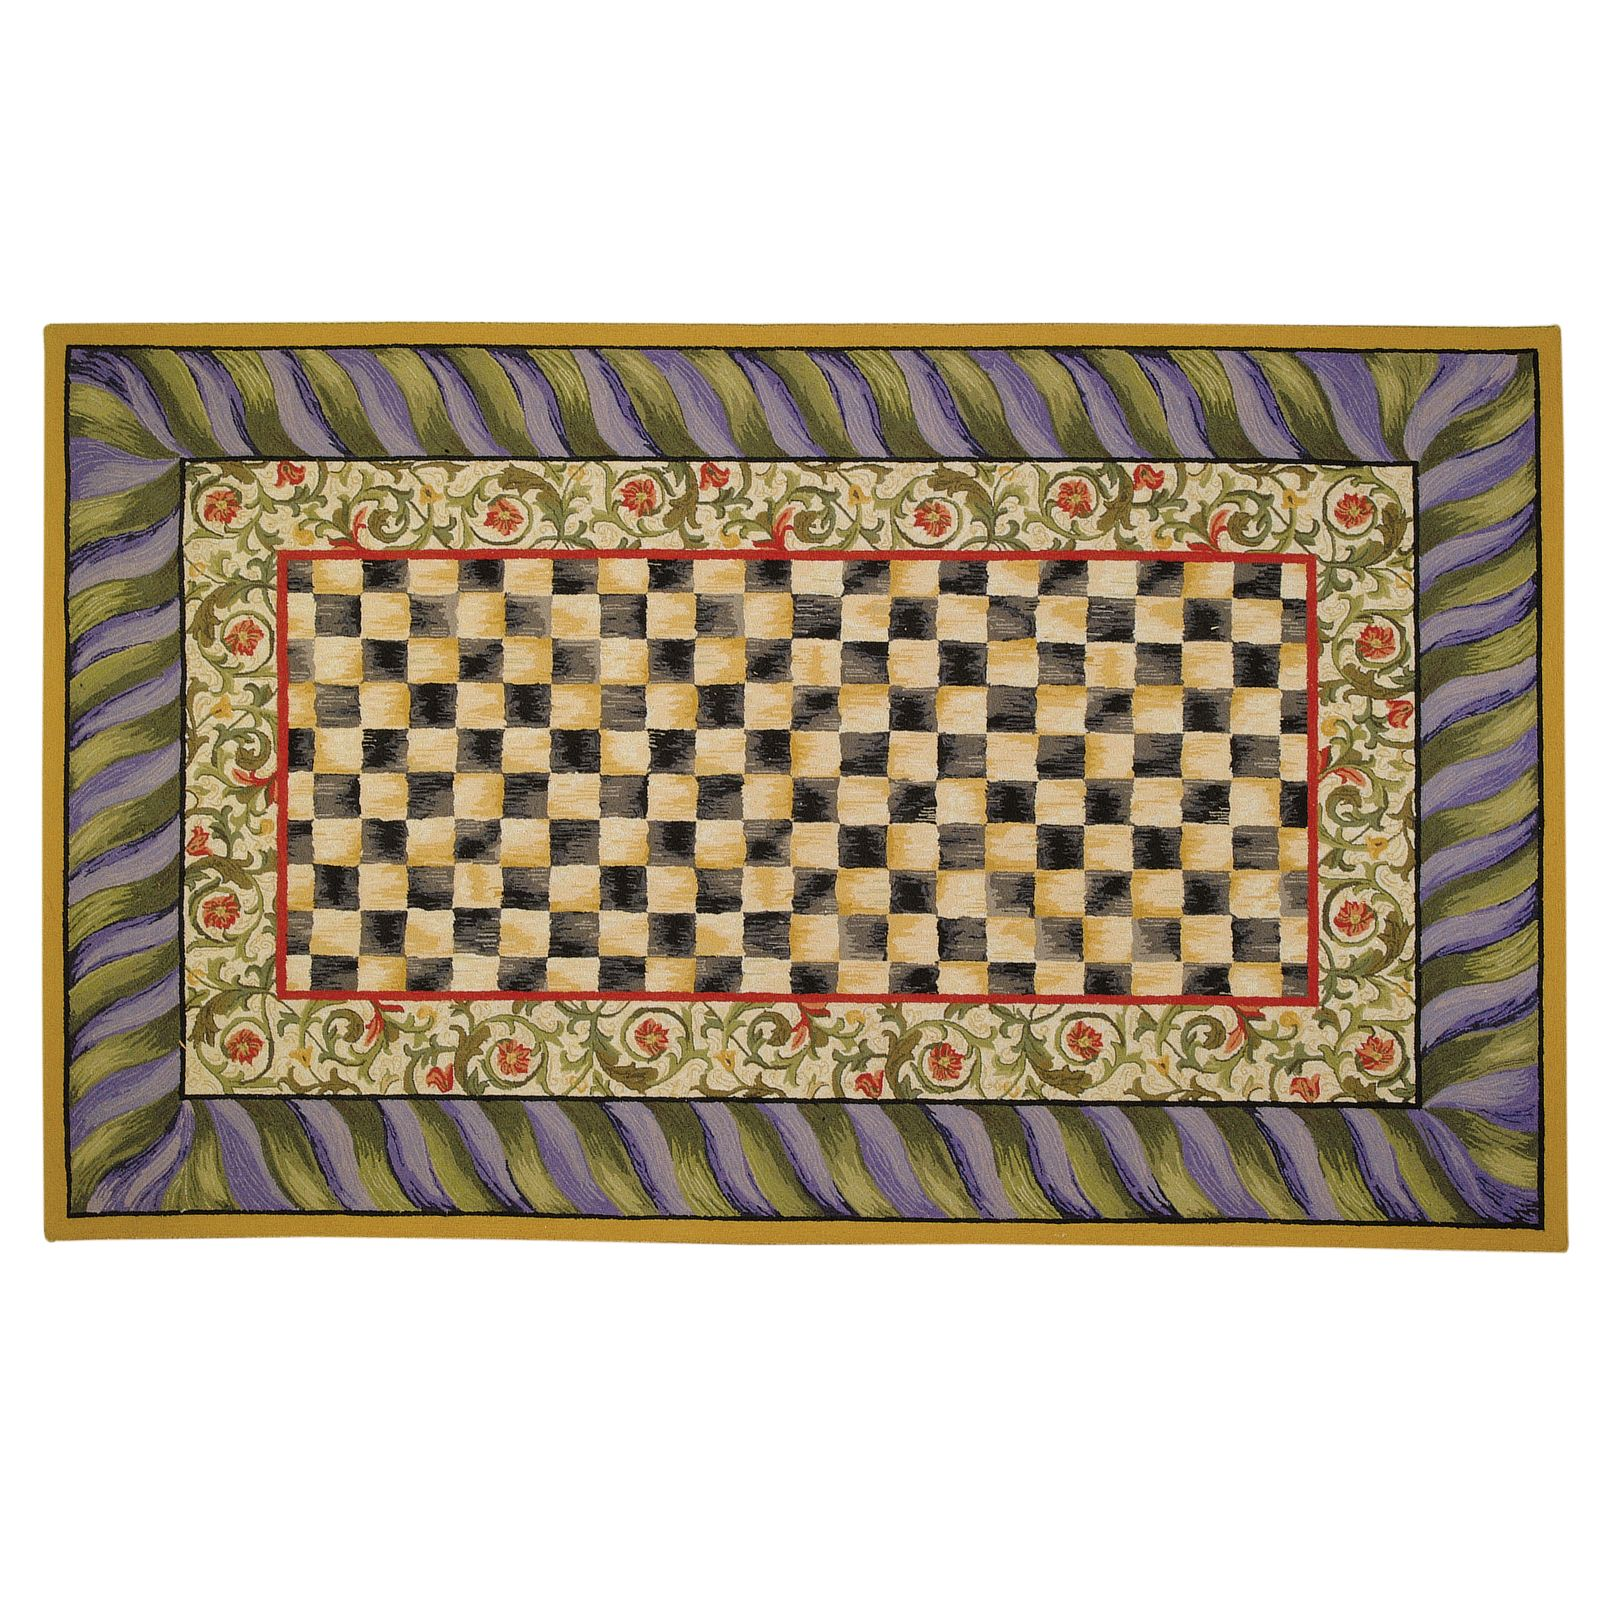 Ковер 152х244 см Courtly Check Purple & Green  350-08071